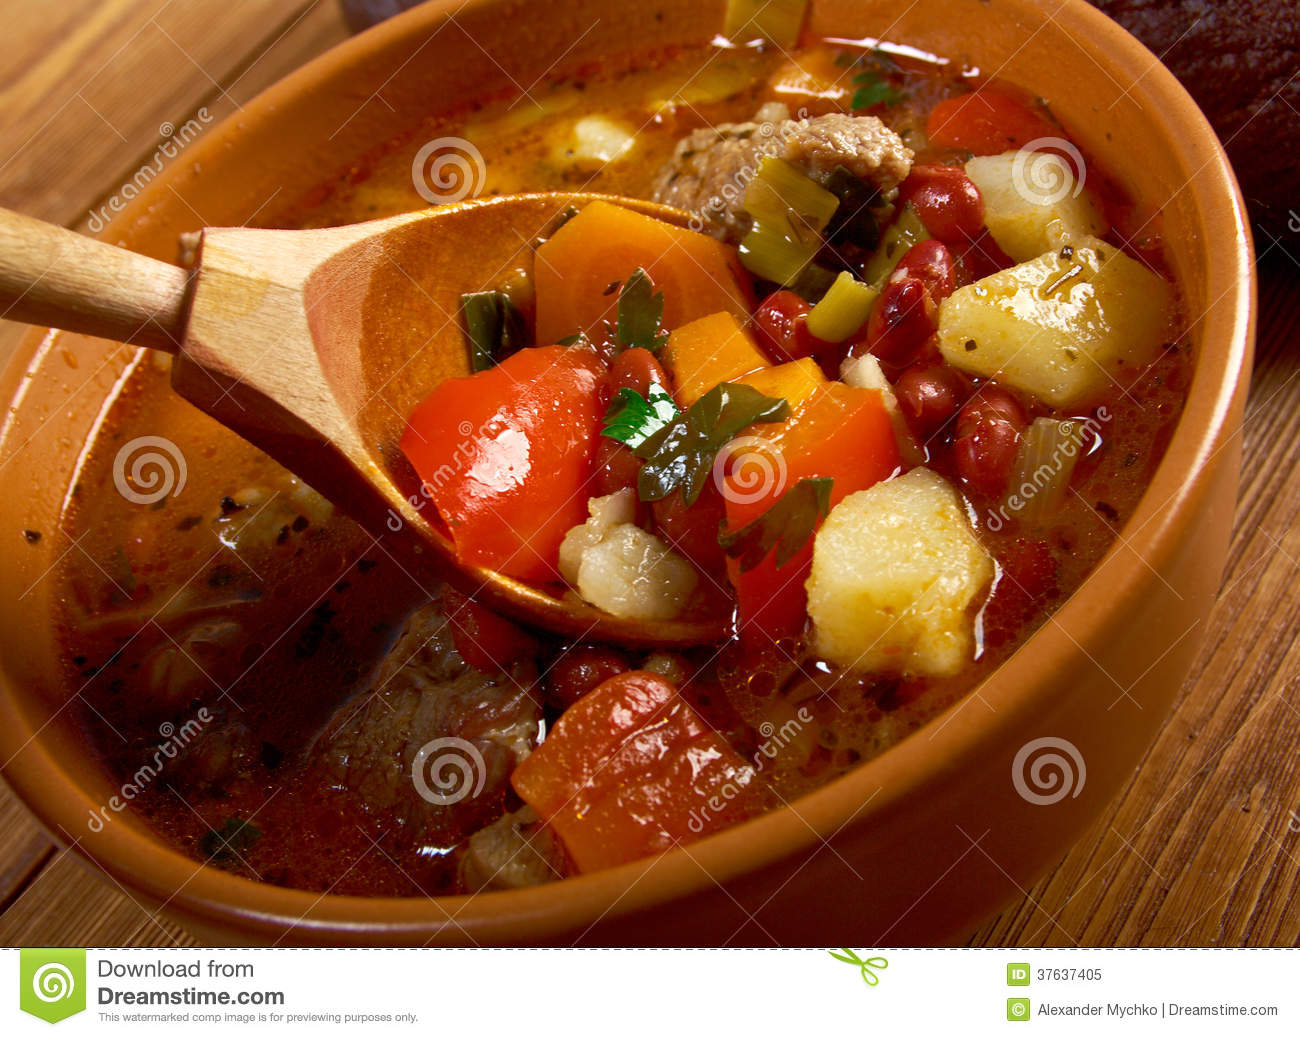 Eintopf traditional german cuisine dish royalty free for Authentic german cuisine